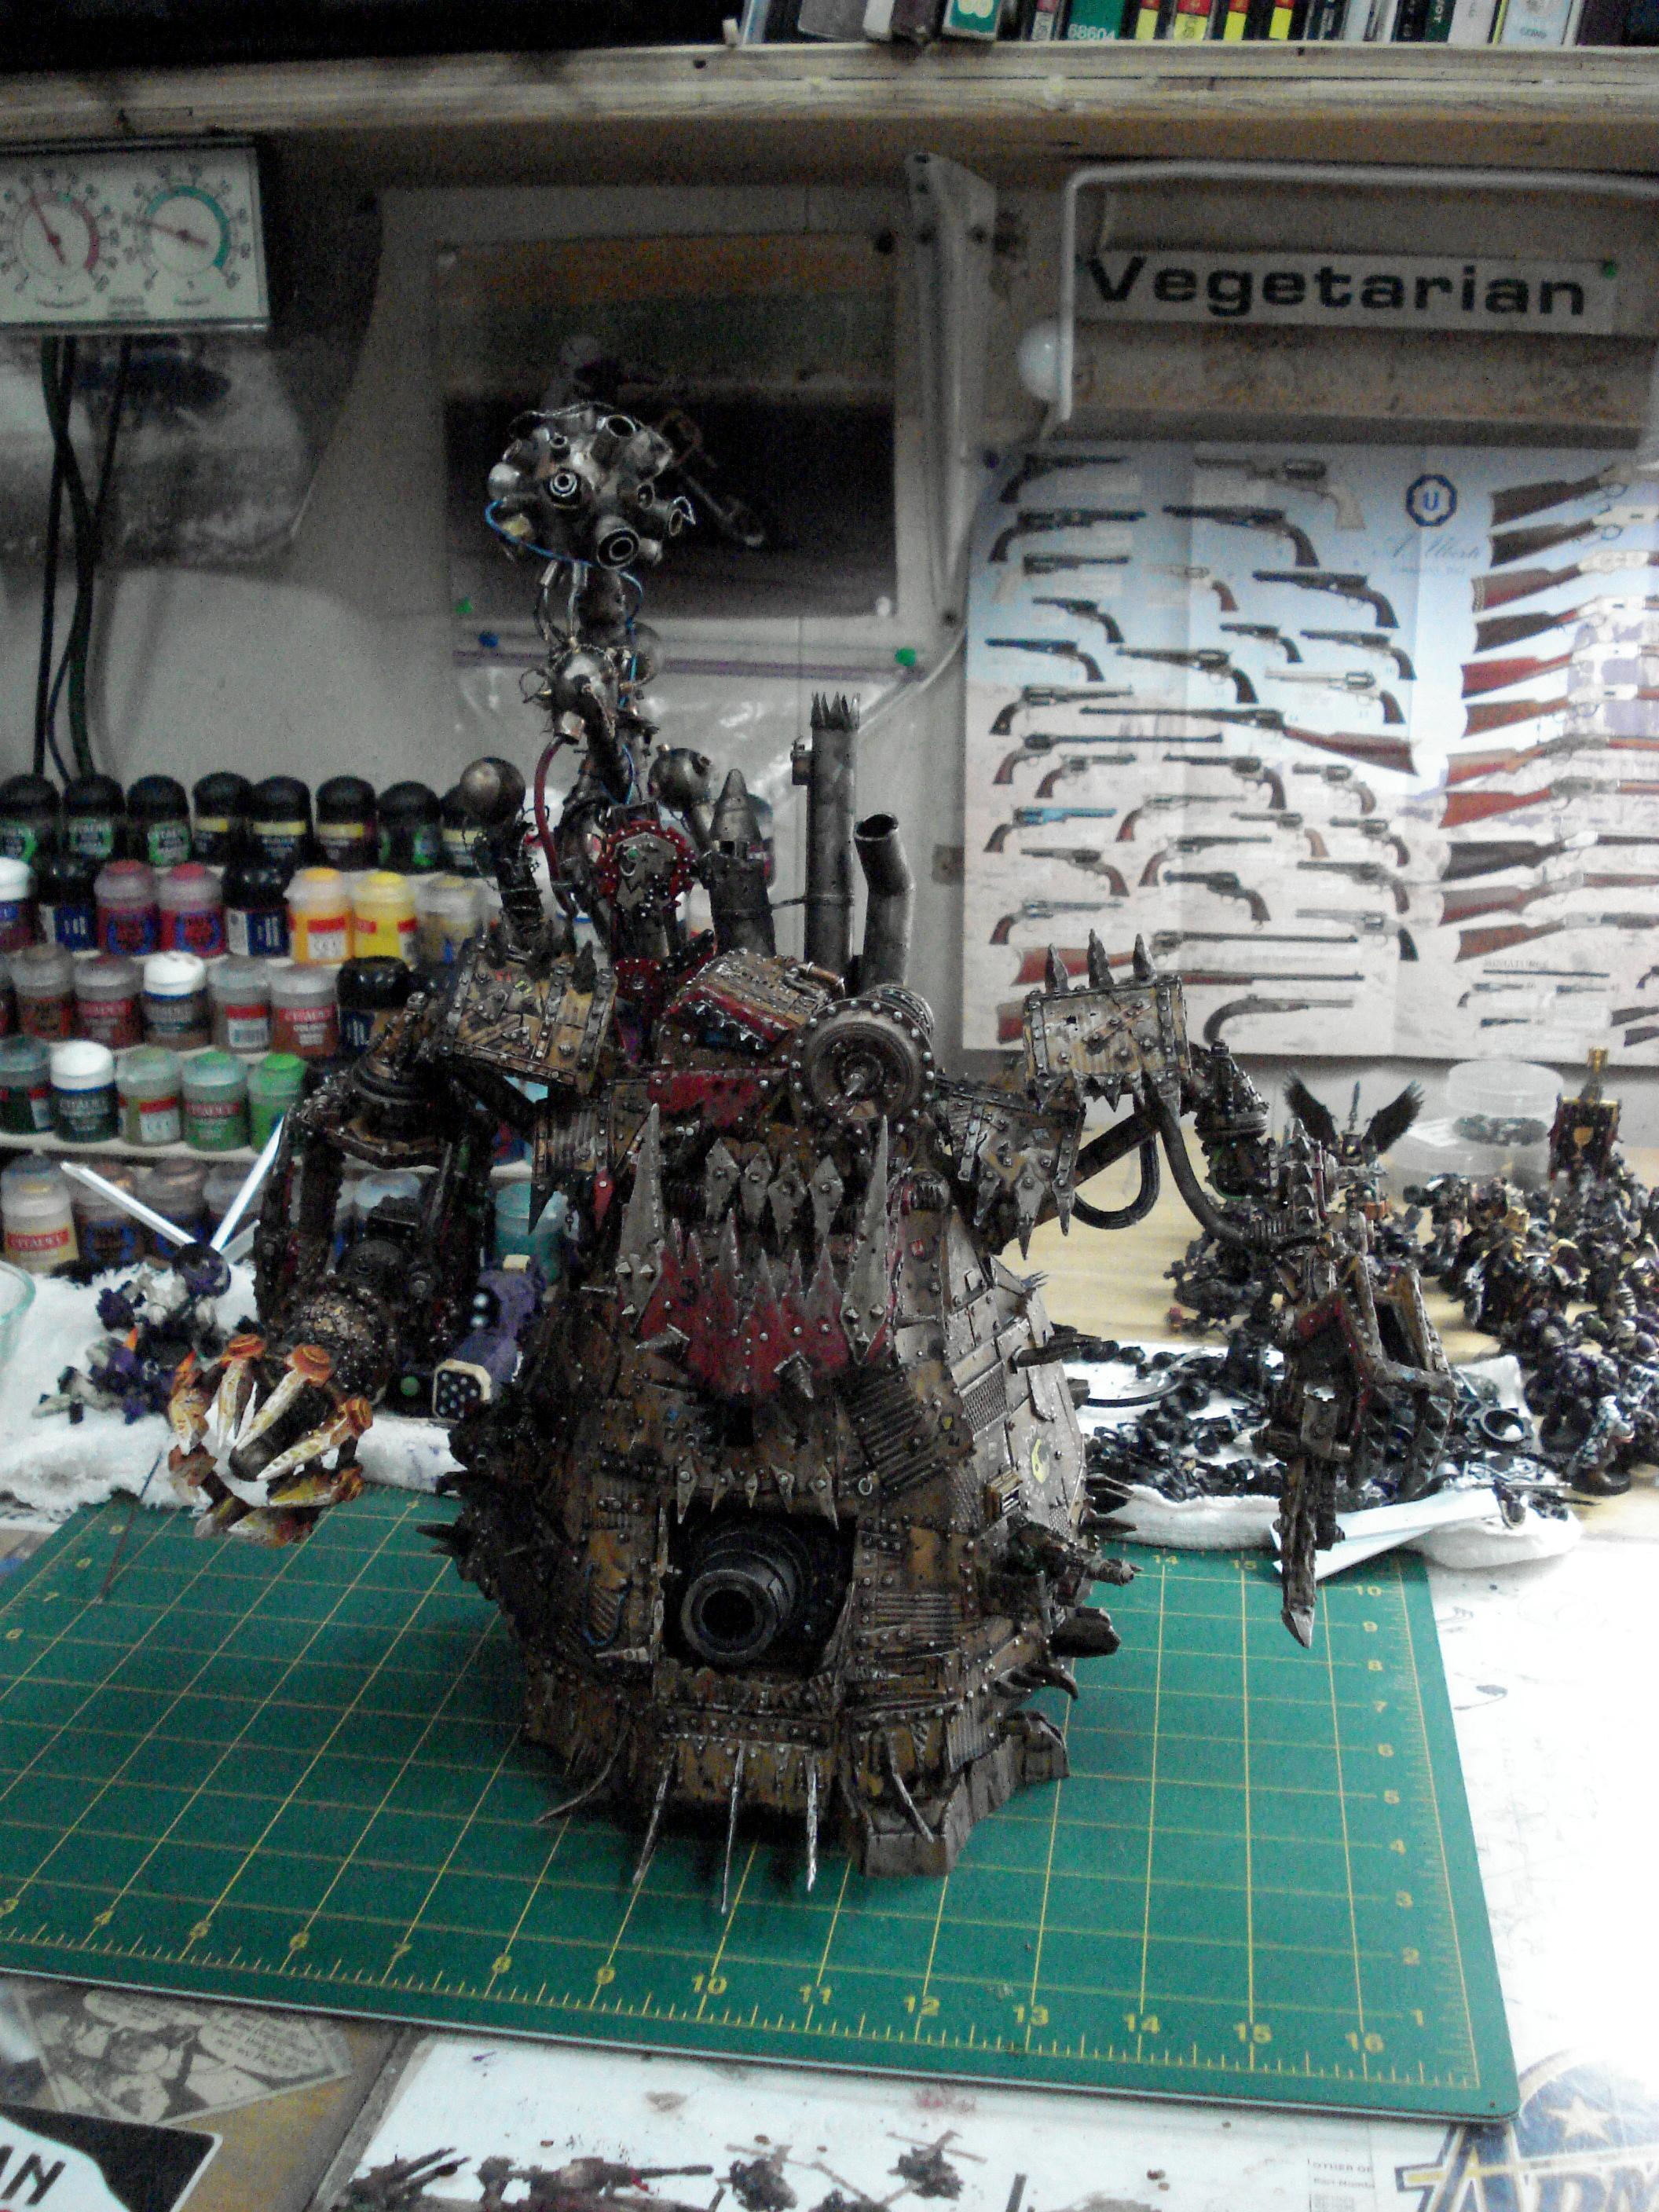 Apocalypse, Bad, Belly, Big Mek, Cannon, Claw, Comission, Crew, Custom, Deff, Defilier, Dreadnought, Field, Force, Kustom, Lifta Droppa, Looted, Mekboy, Mob, Moons, Orks, Scrap, Space, Space Marines, Stompa, Trukk